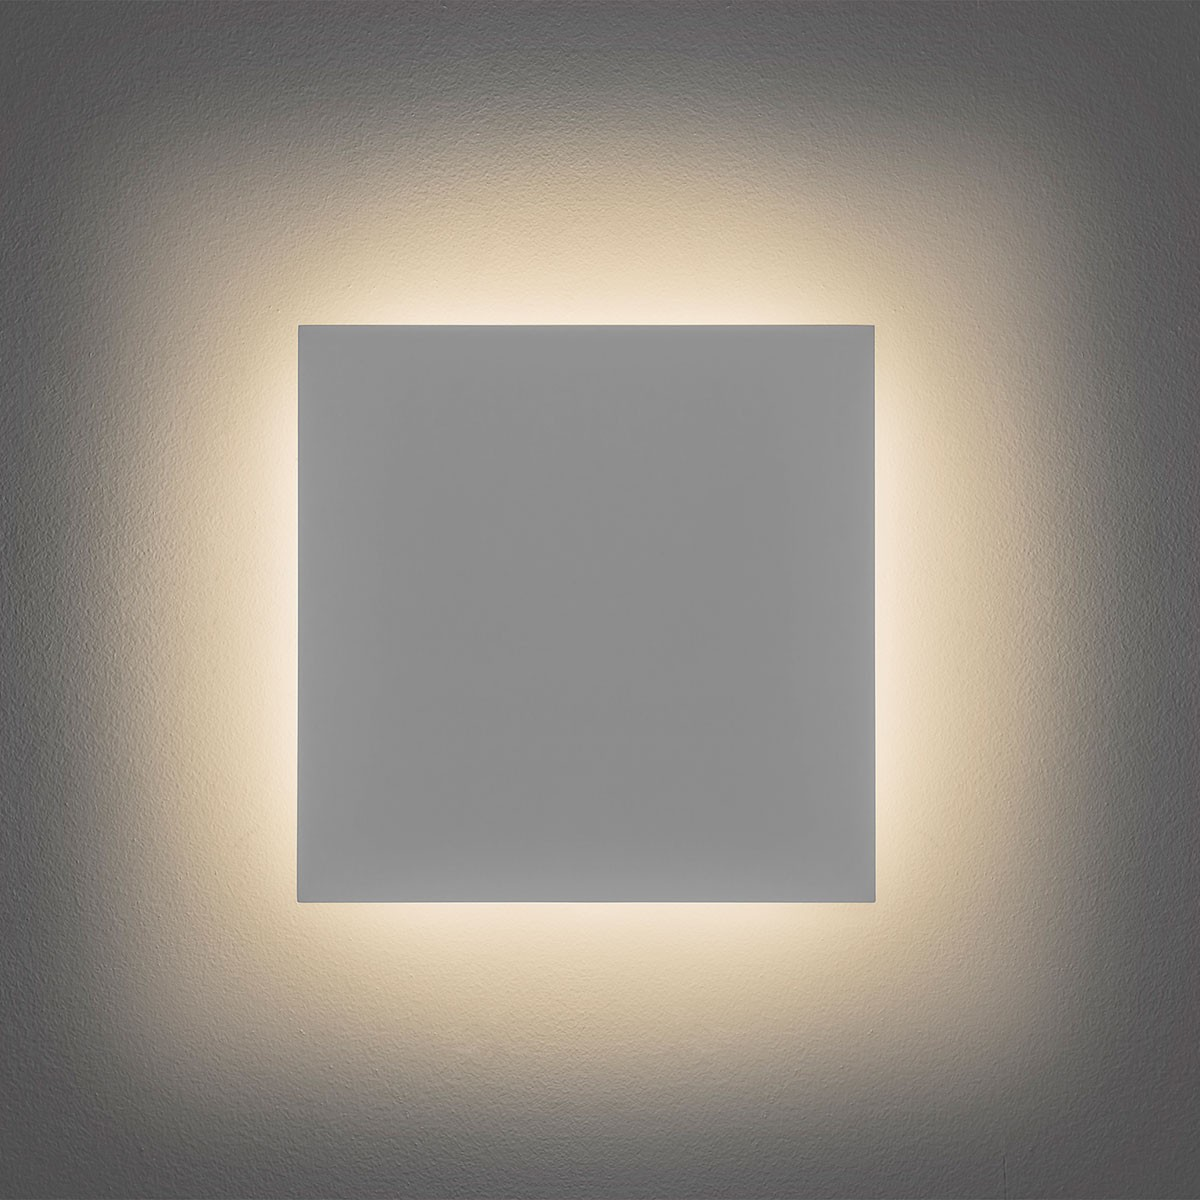 Astro Eclipse 300 Square 3000K Plaster LED Wall Light at UK Electrical Supplies.